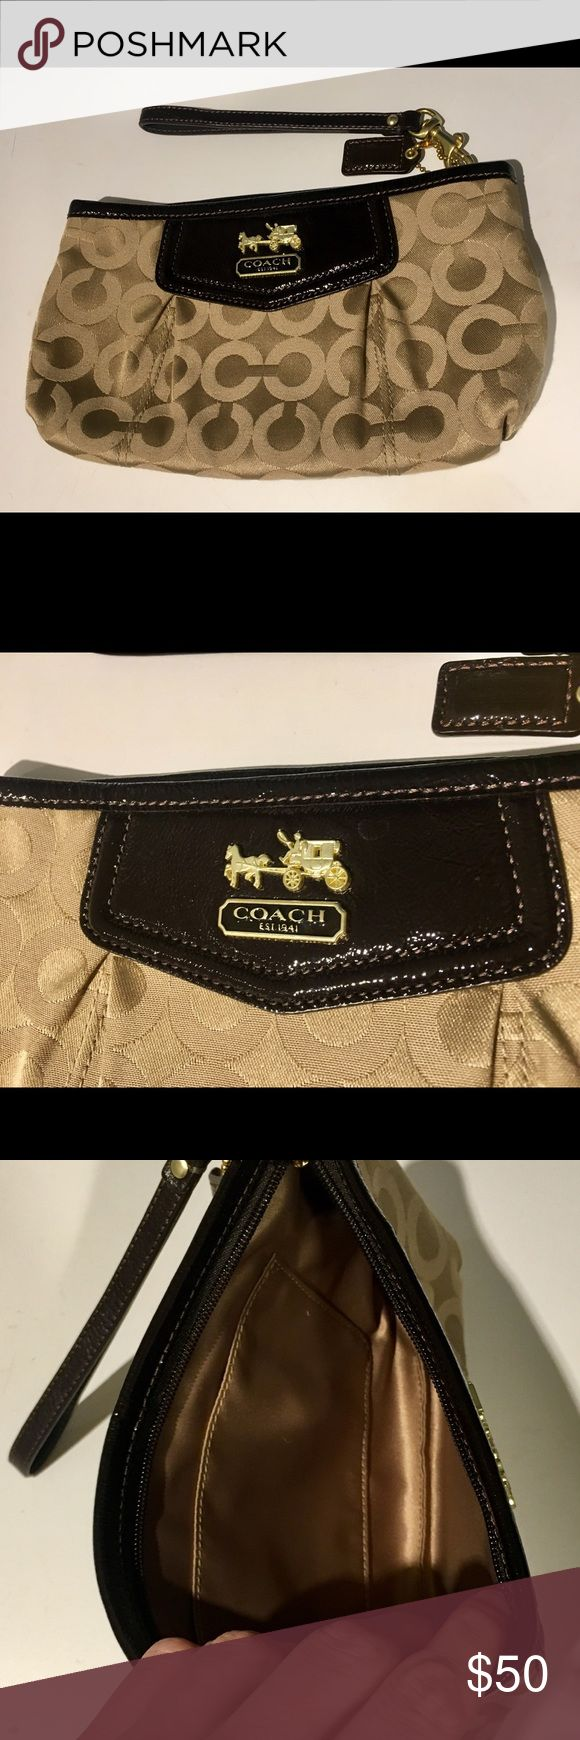 Coach Wristlet Brown patent leather and tan fabric authentic Coach wristlet. Lightly used, in excellent condition. Holds small wallet, phone, keys, lipgloss, etc. Perfect for a night out! Coach Bags Clutches & Wristlets